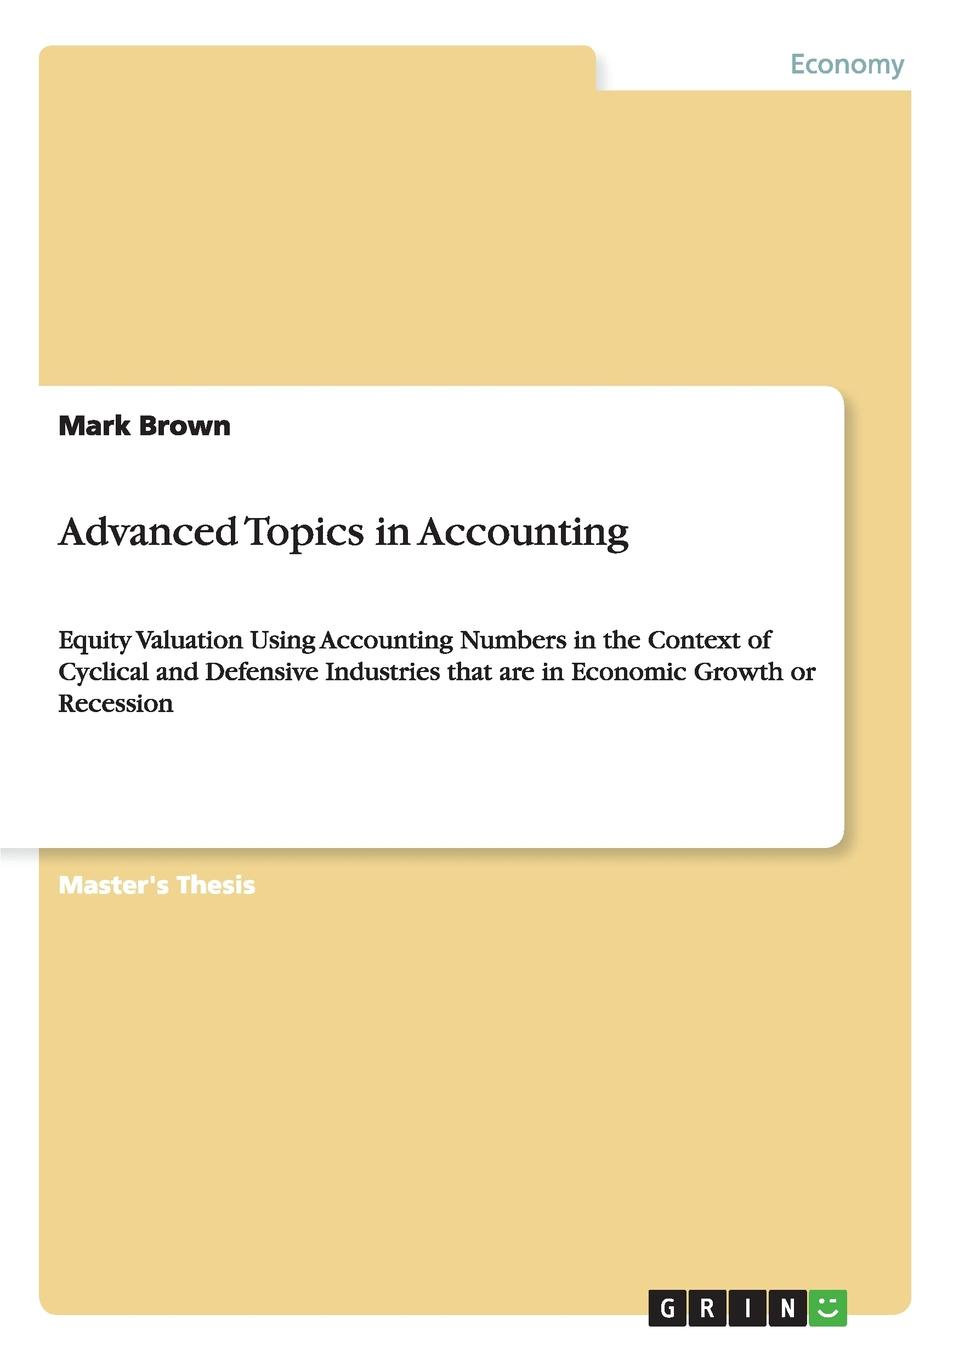 цена на Mark Brown Advanced Topics in Accounting